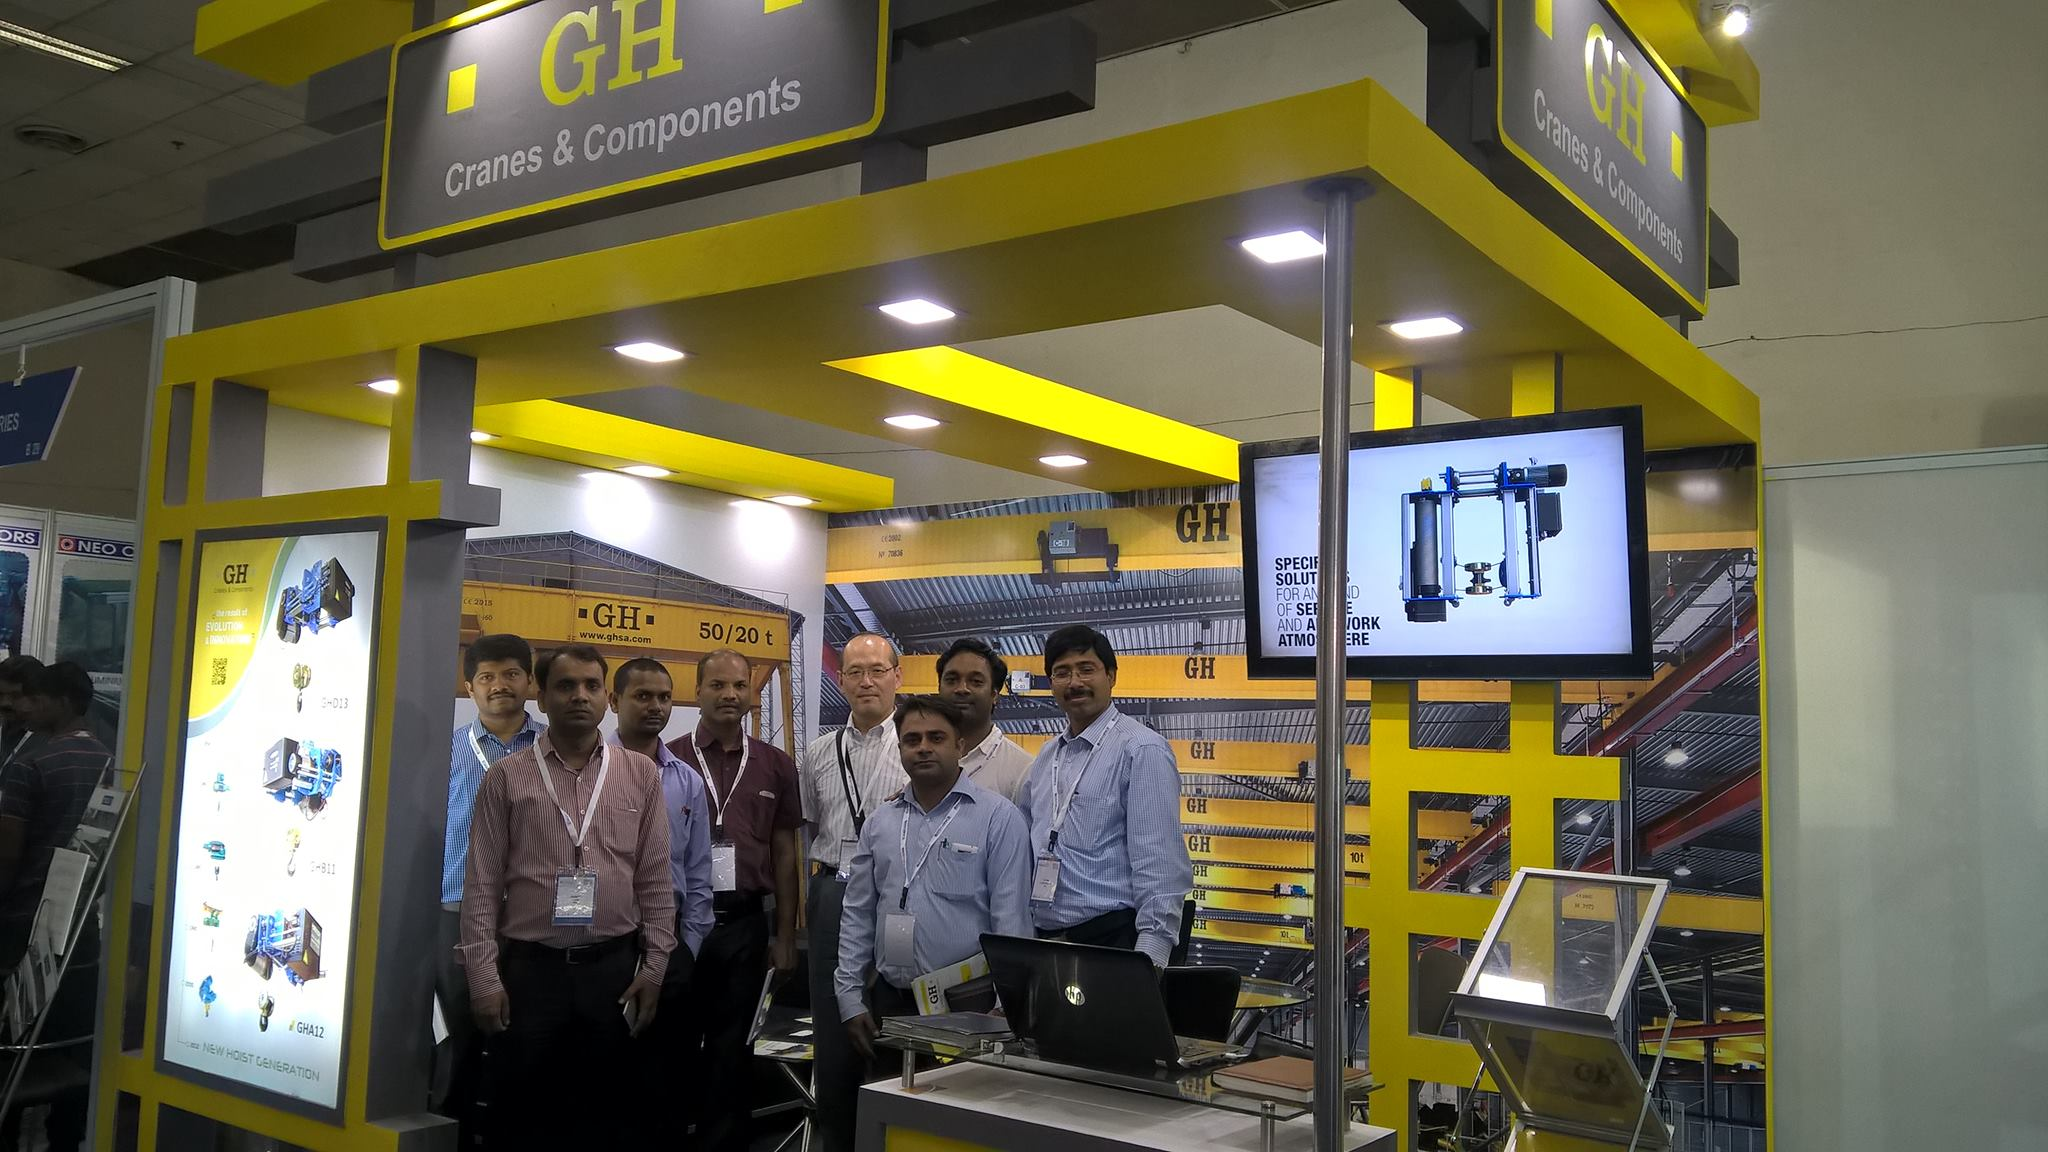 GH CRANES & COMPONENTS Cranes India is waiting for you at The IWS 2015